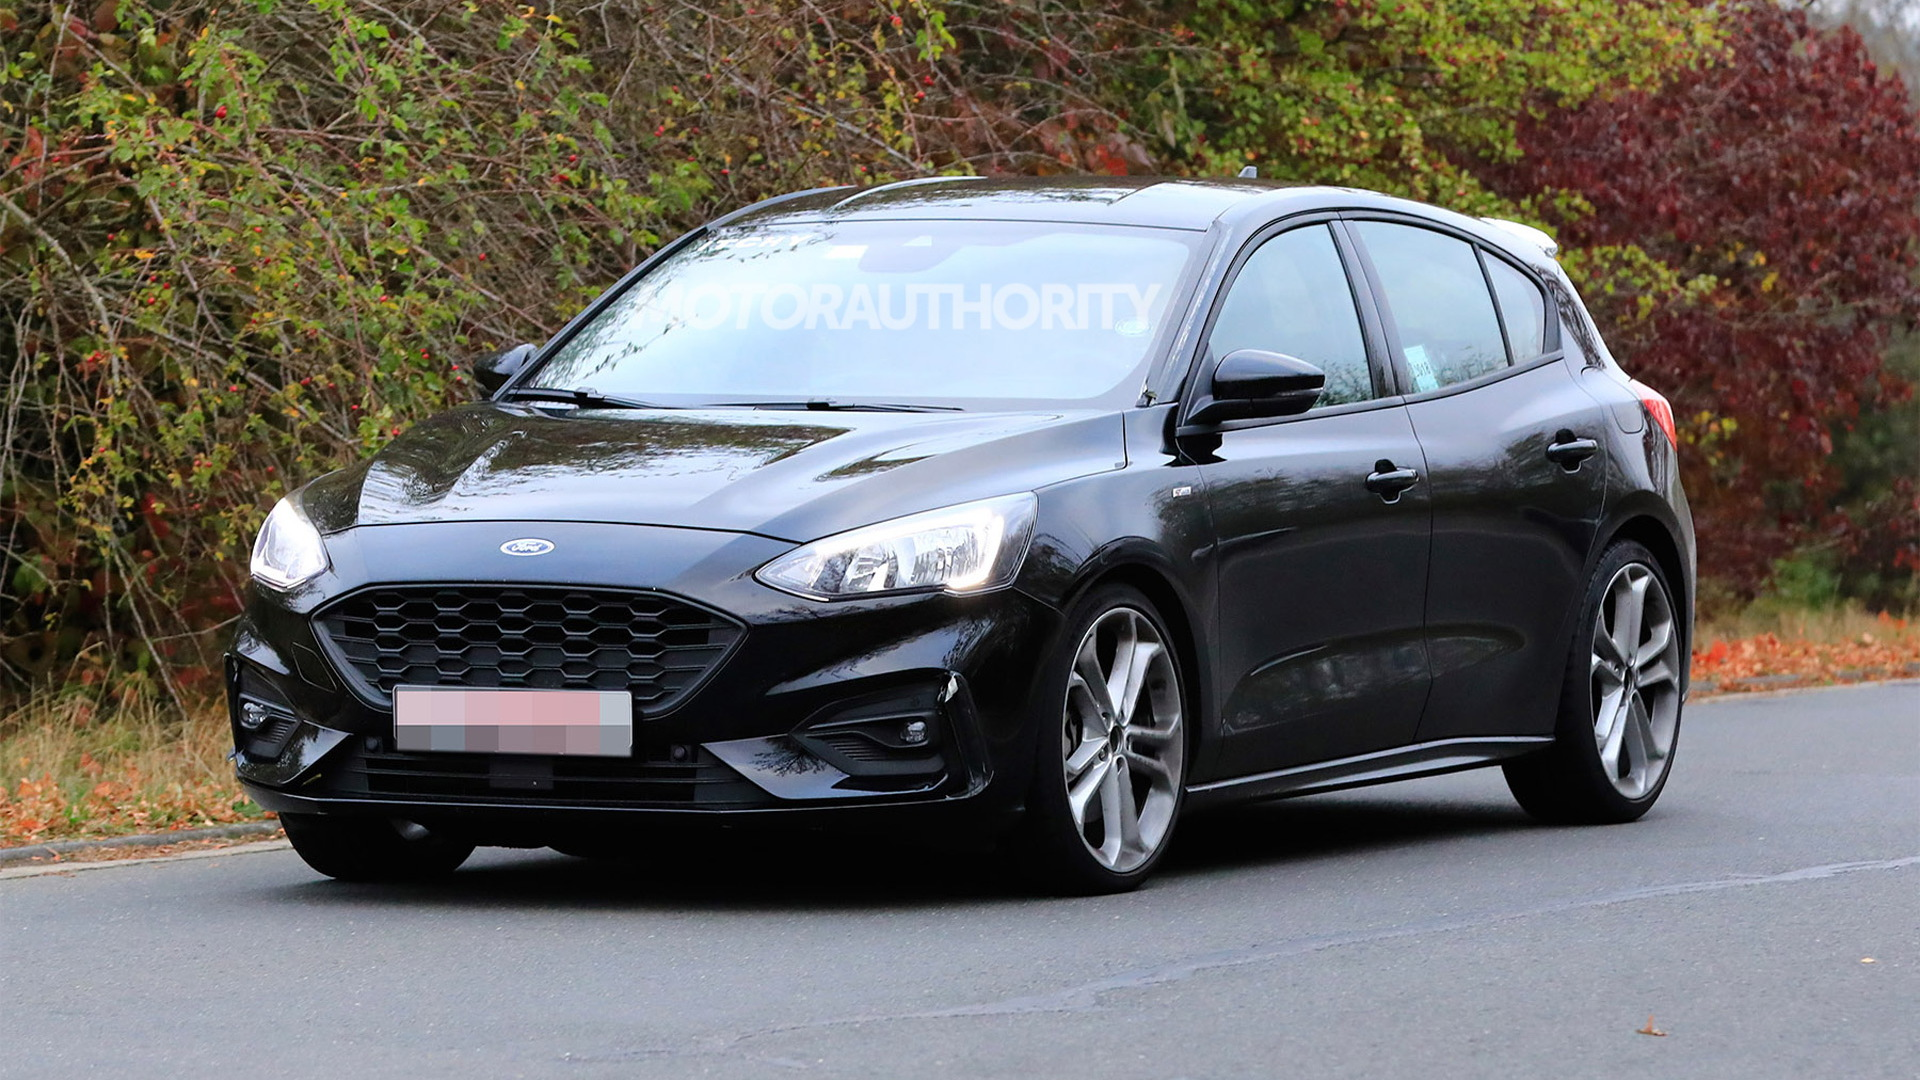 2019 Ford Focus St Spy Shots And Video